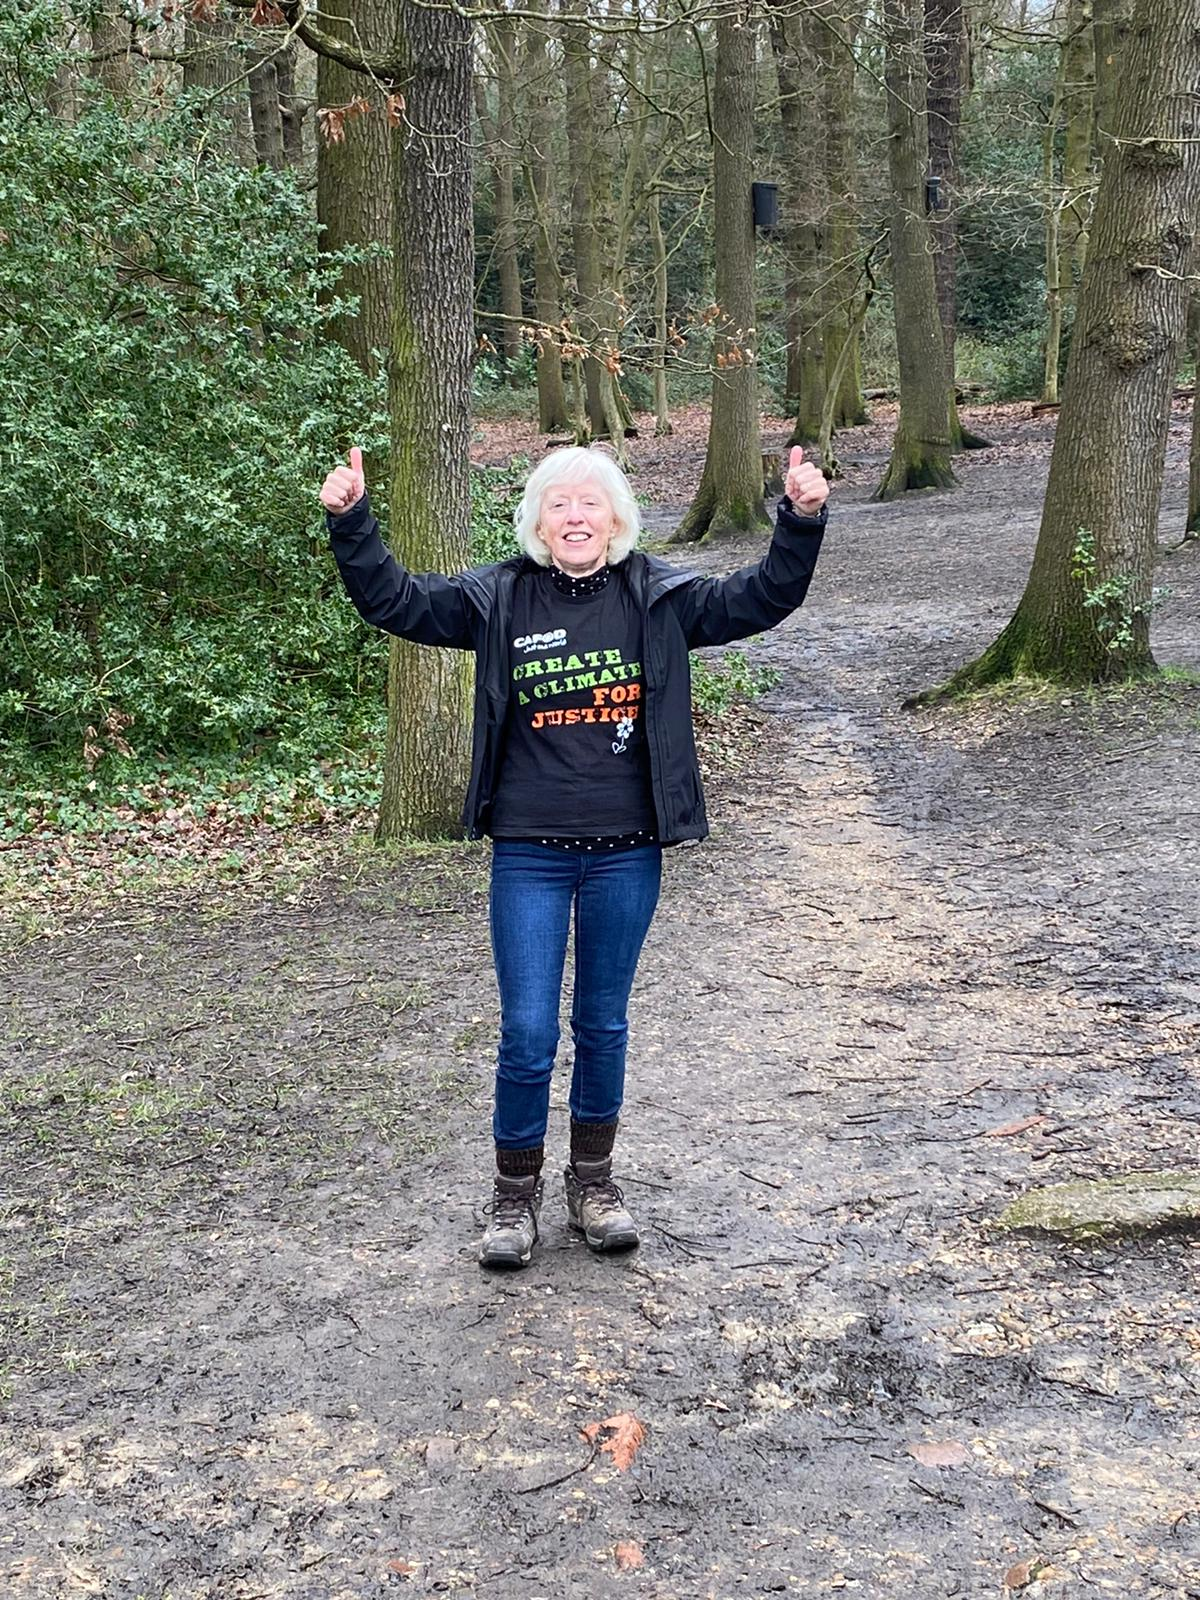 Enfield parishioner joins CAFOD in walking for water - Diocese of Westminster